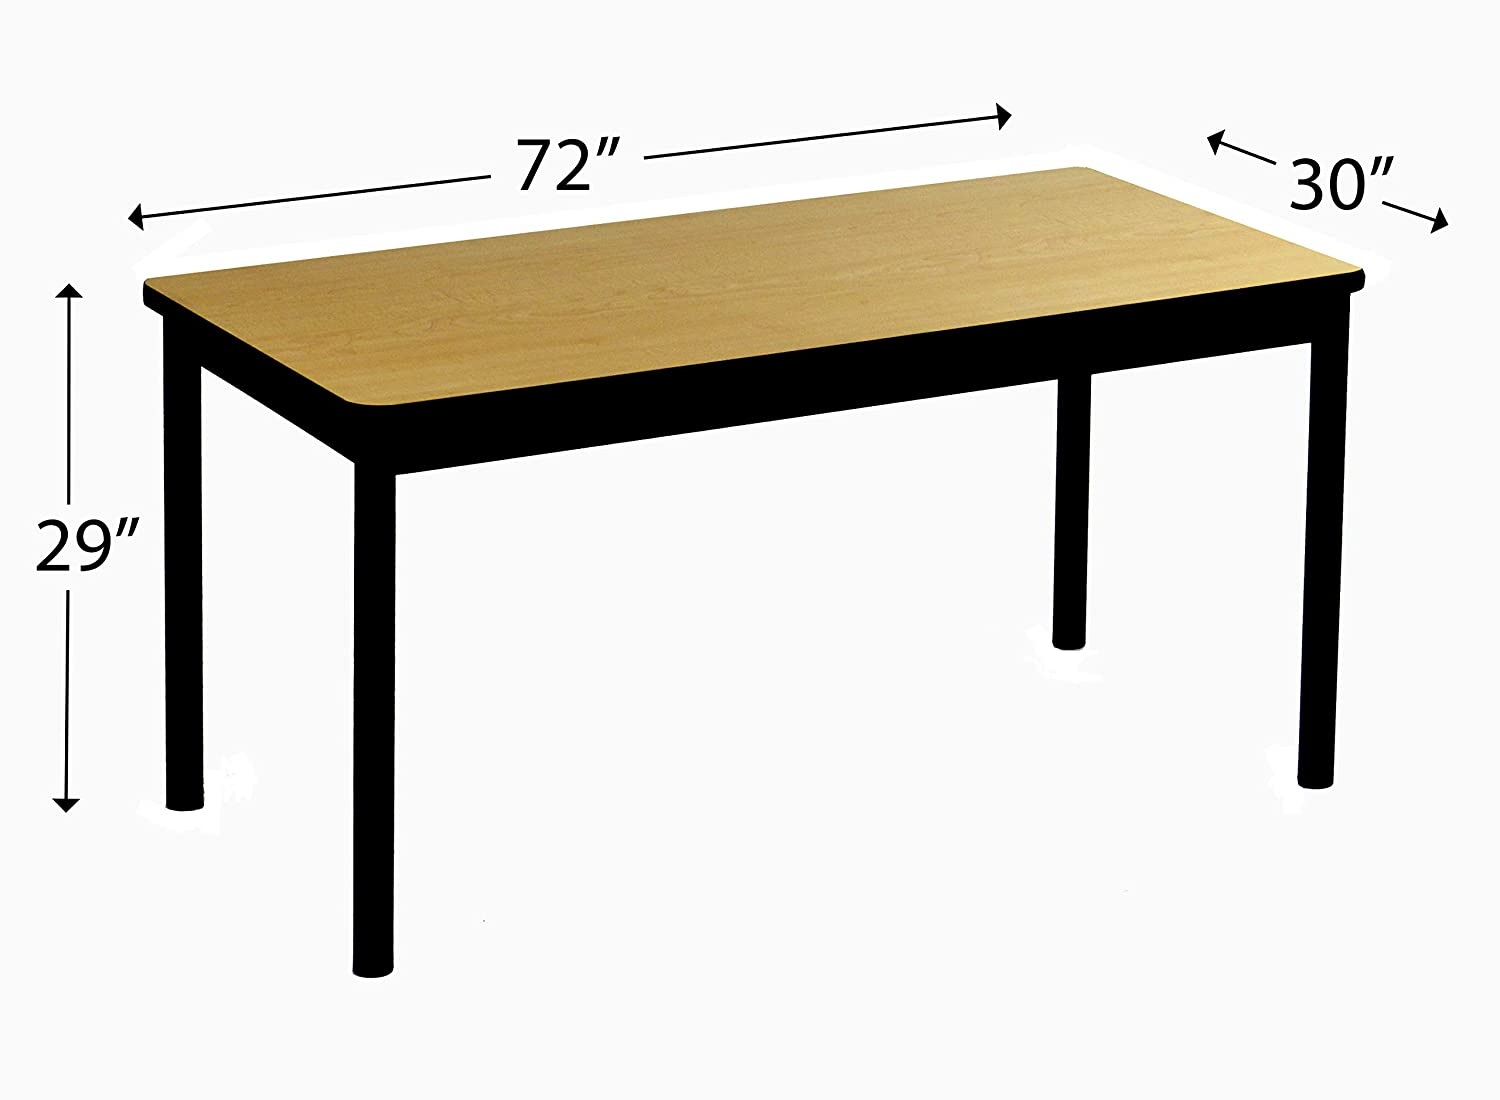 LR2448-15 Black Frame Correll 24x48 Office /& Utility Work Table Rock Solid Commercial Quality Gray Granite High-Pressure Laminate